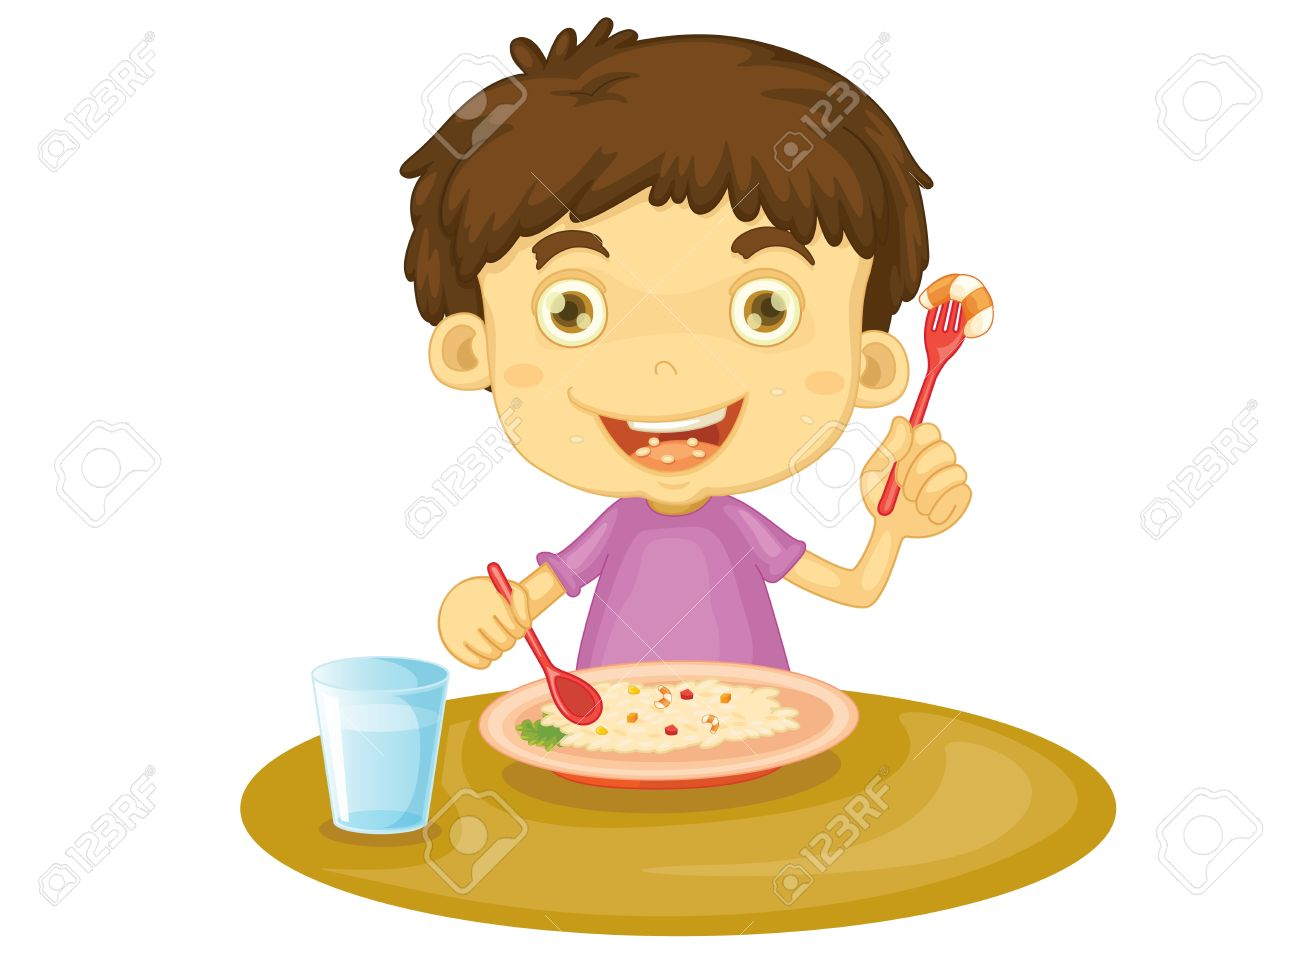 rice cartoon illustration of child eating at a table - Cartoon Picture Of Child